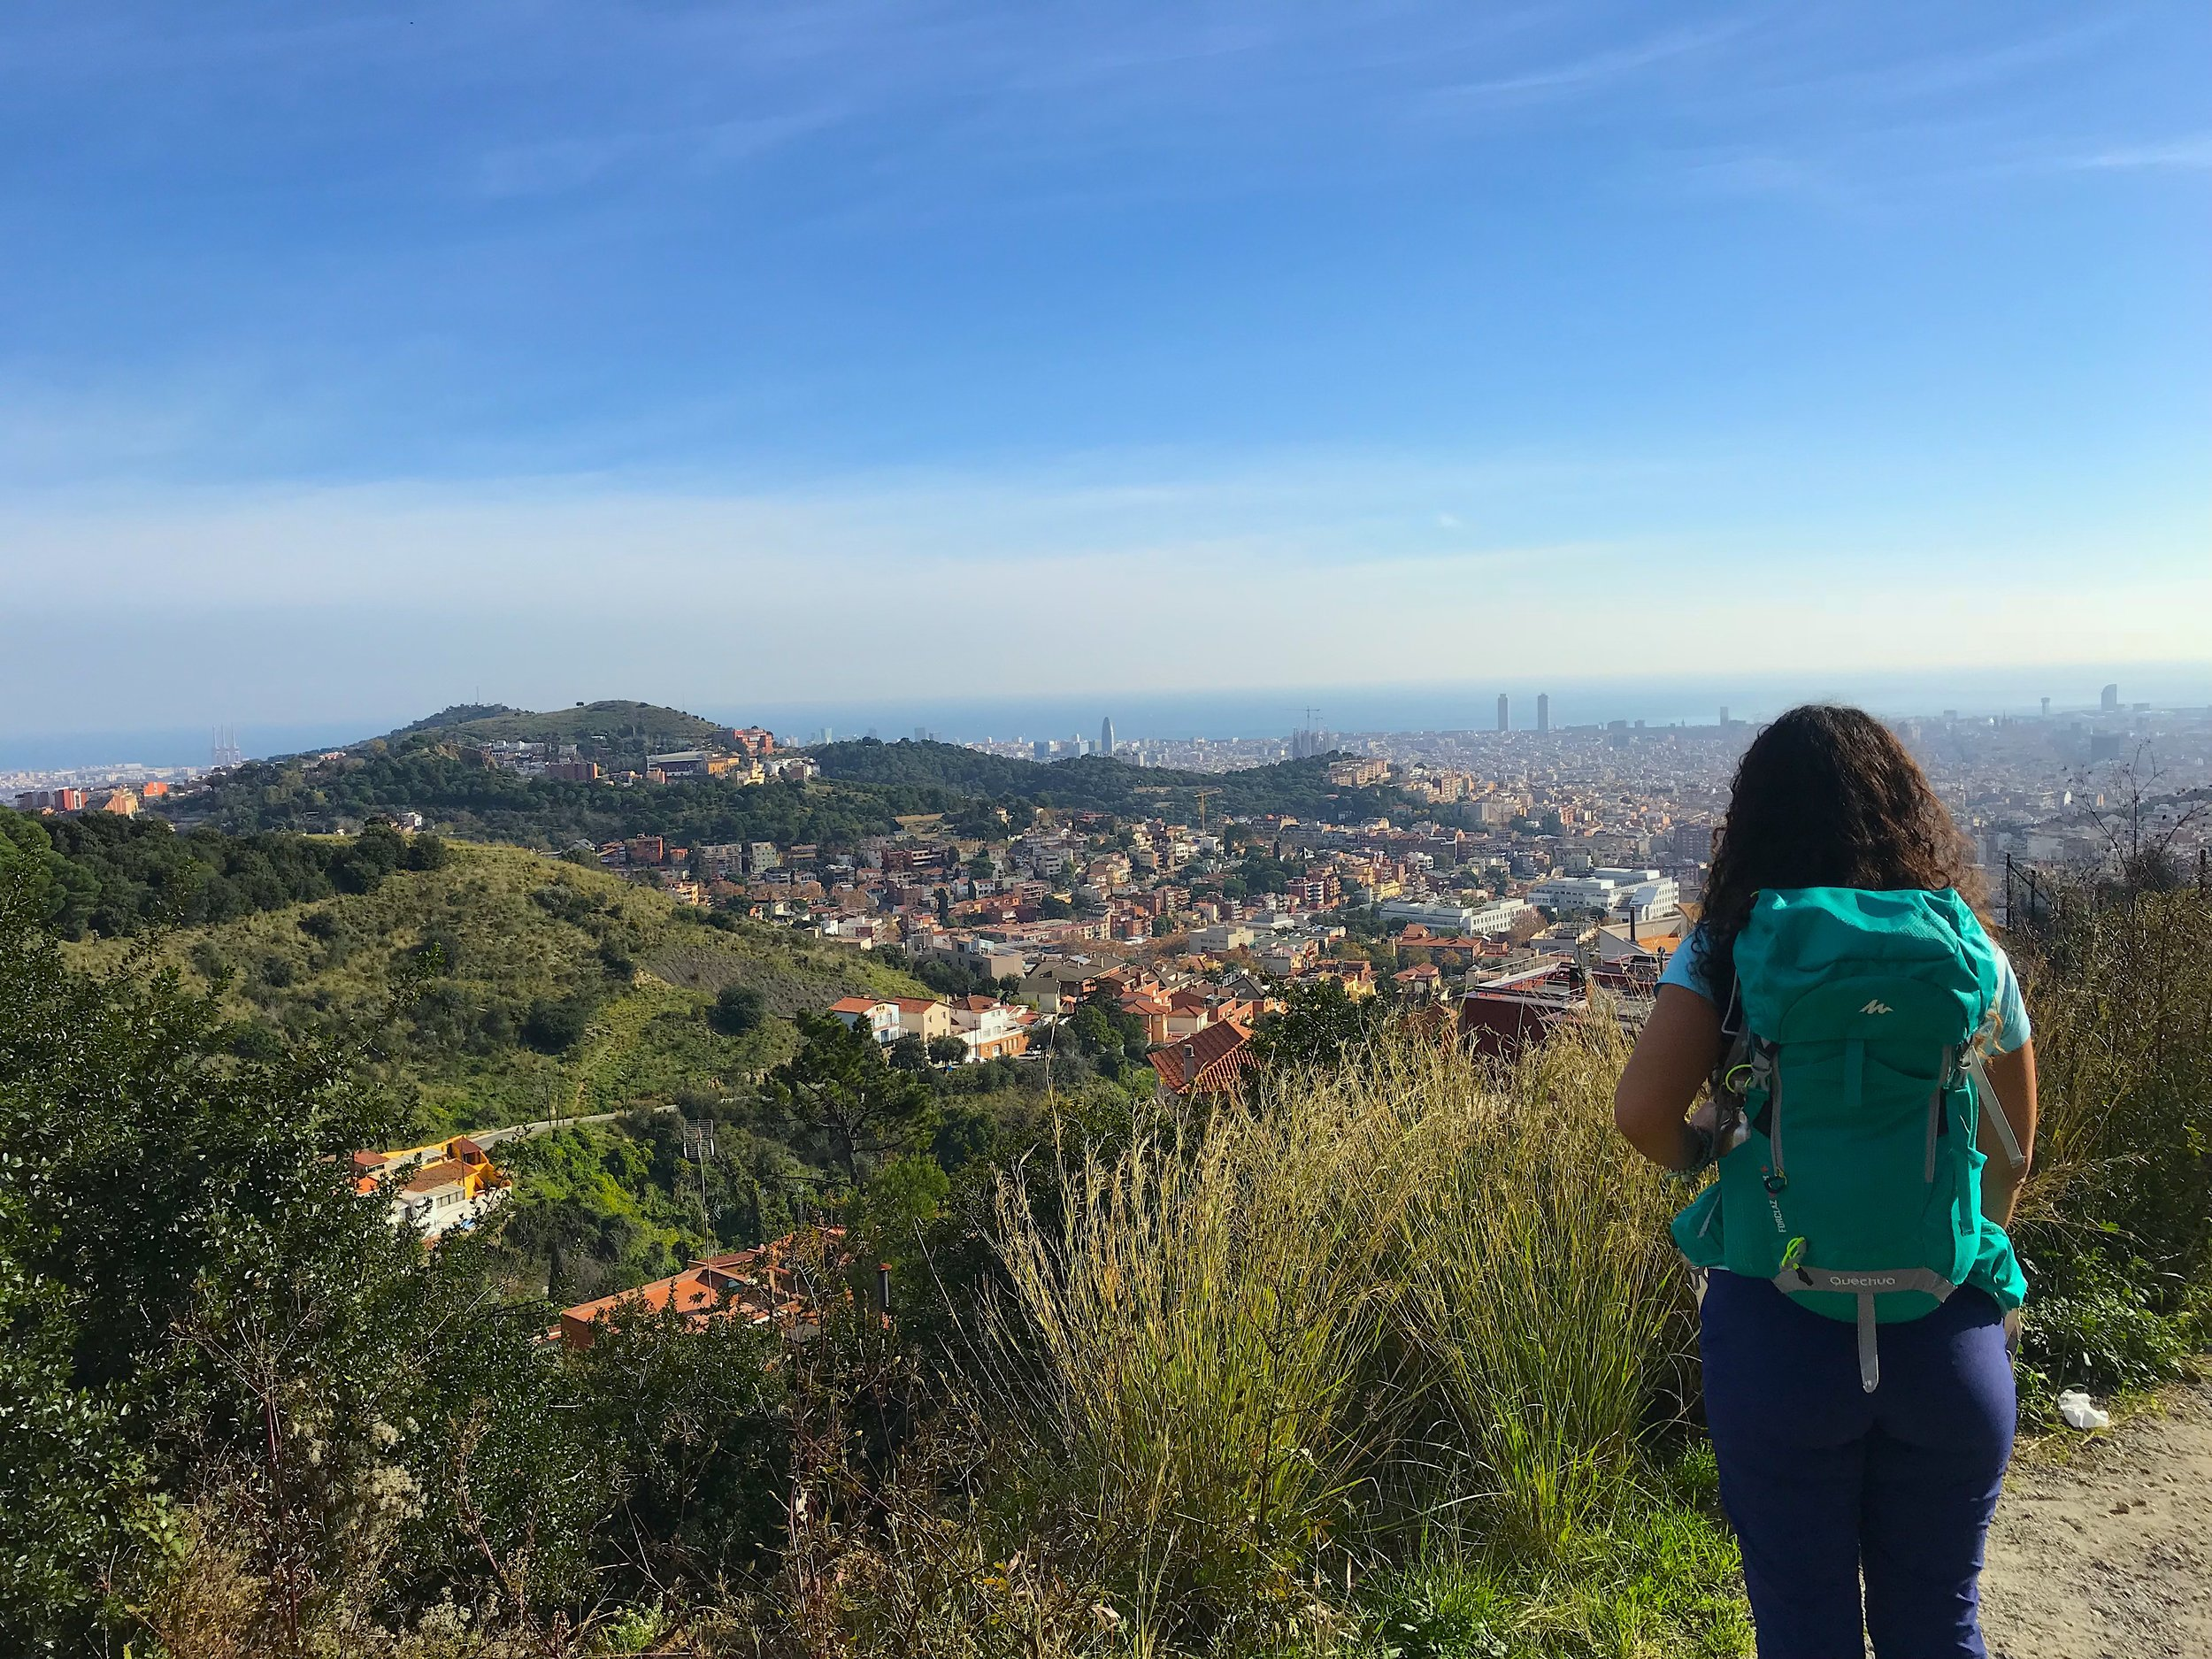 On route to the top of Tibidabo